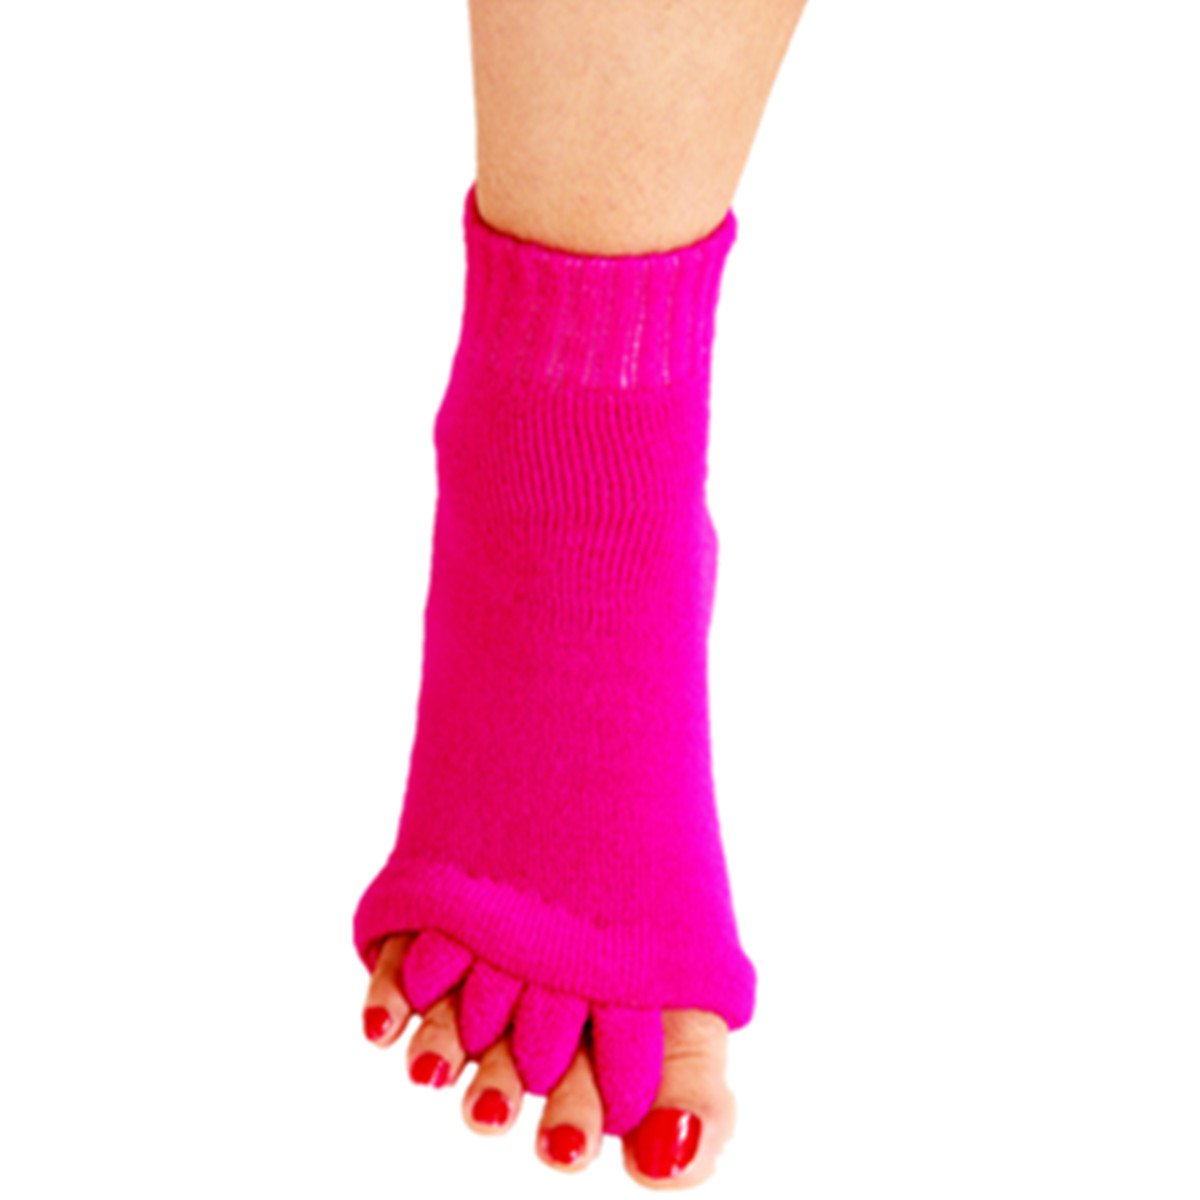 1 Pair Yoga GYM Massage Five Toe Separator Socks Foot Alignment Pain Relief Hot (One Size, A-Hot Pink)